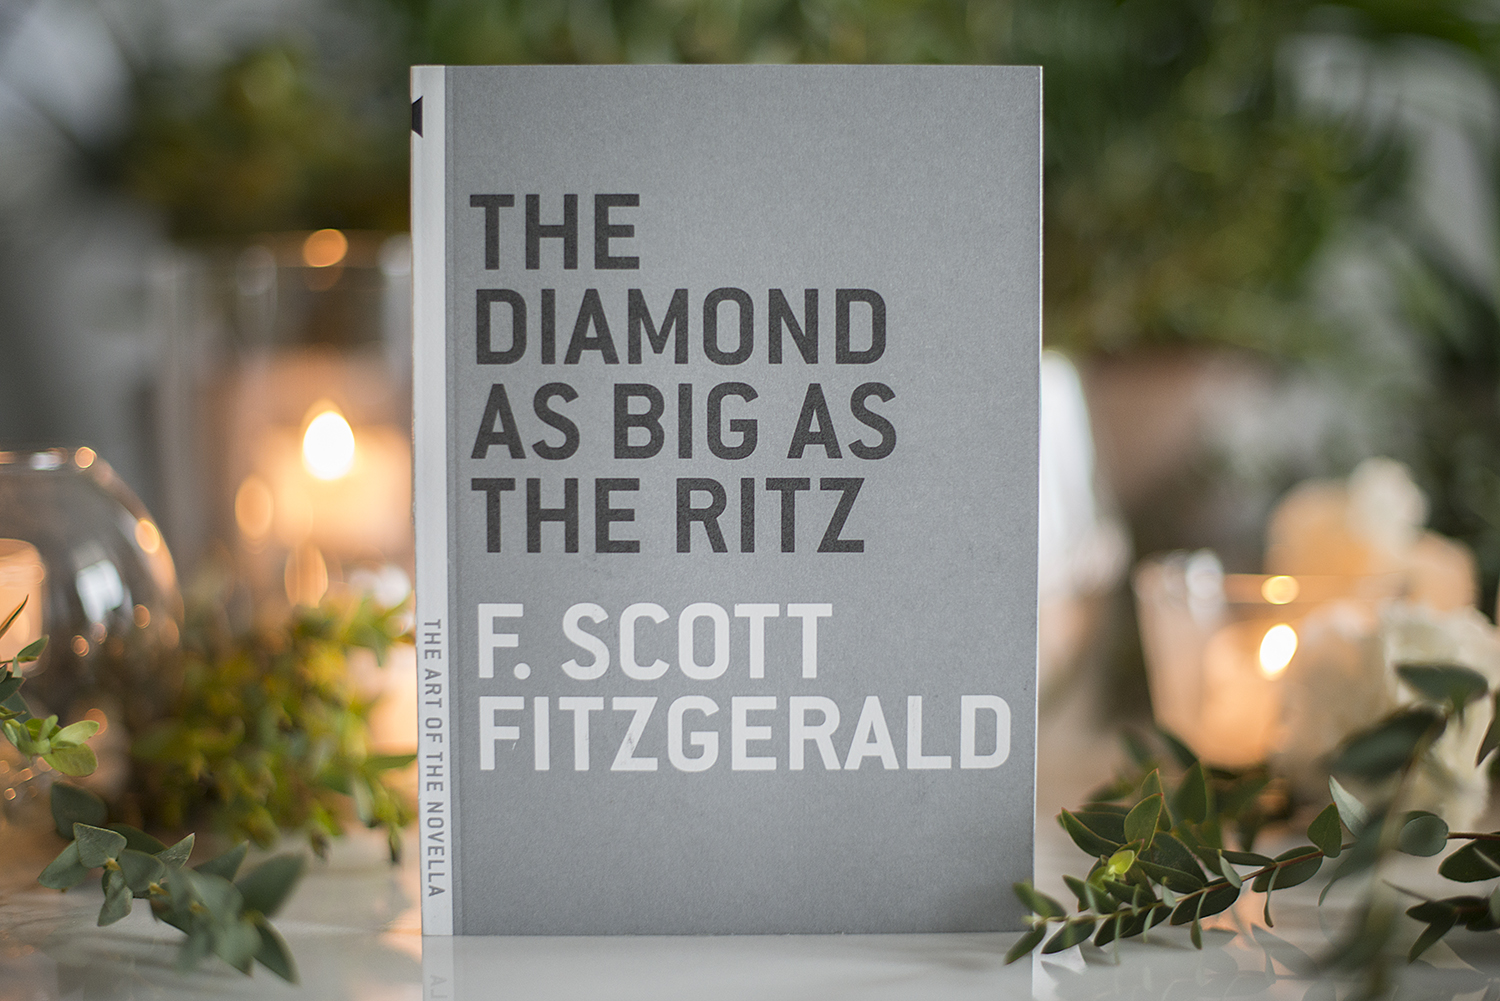 review of the diamond as big as the ritz essay Free essay: a) john t unger is the protagonist of 'the diamond as big as the  ritz', he shows us through his eyes as an outsider to both washington estate.